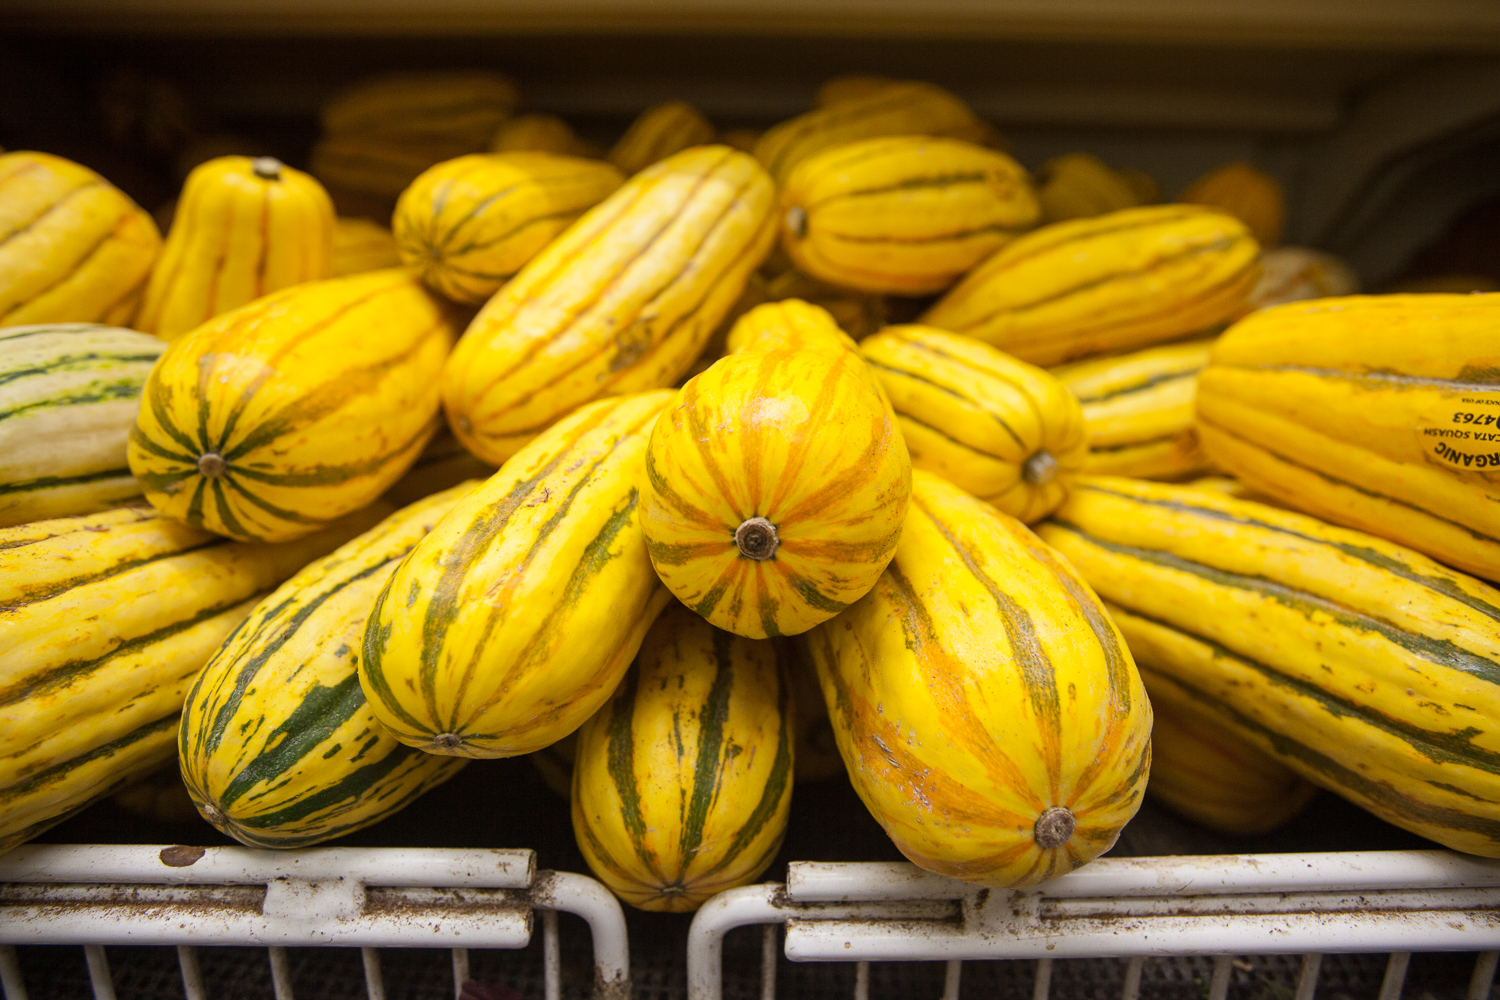 organic yellow squash from Mana Foods Produce Department